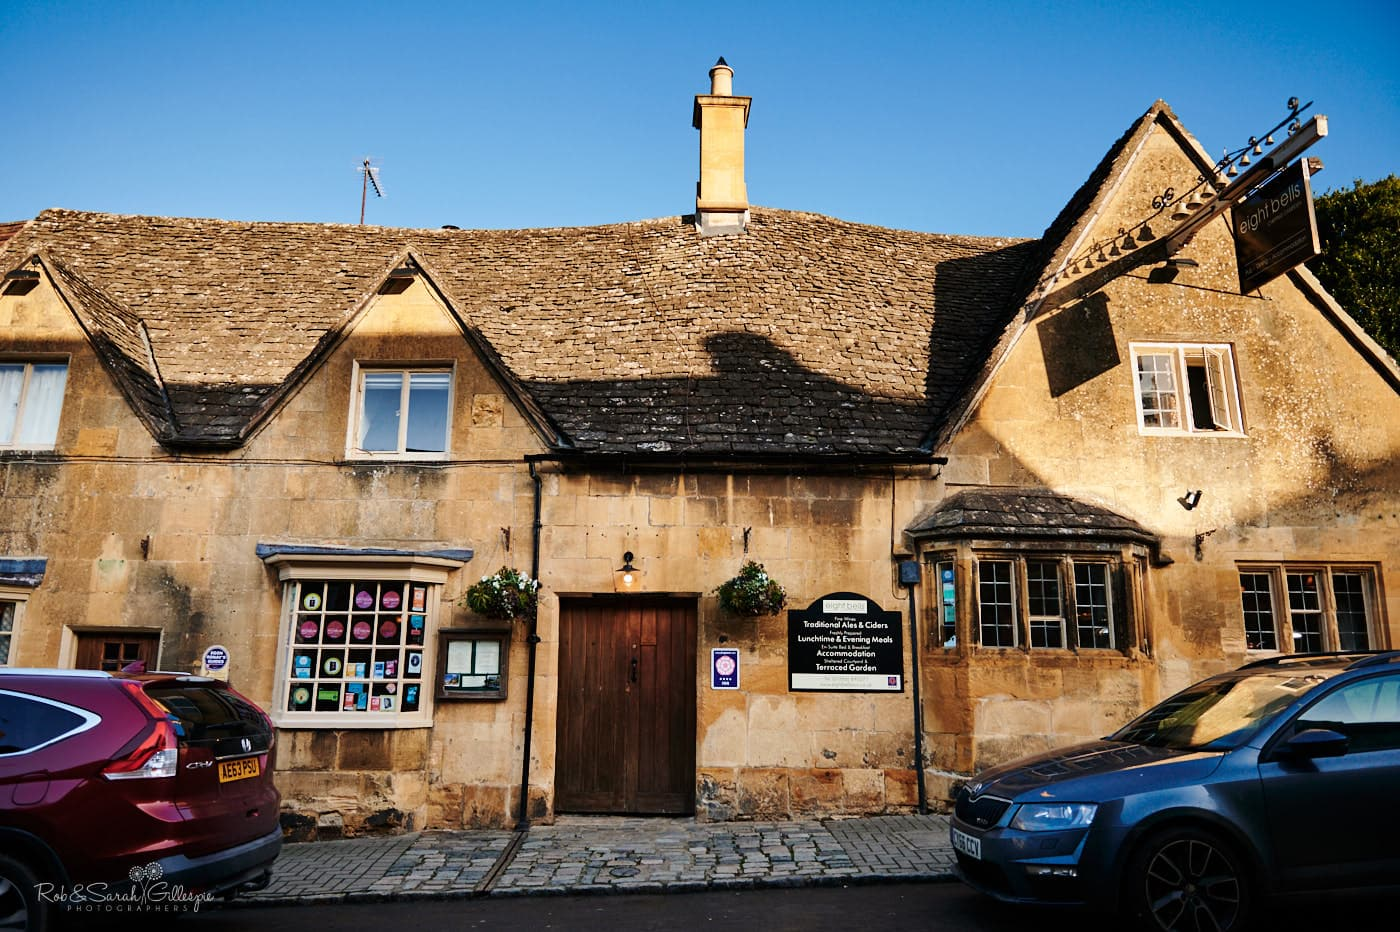 Eight Bells inn in Chipping Campden